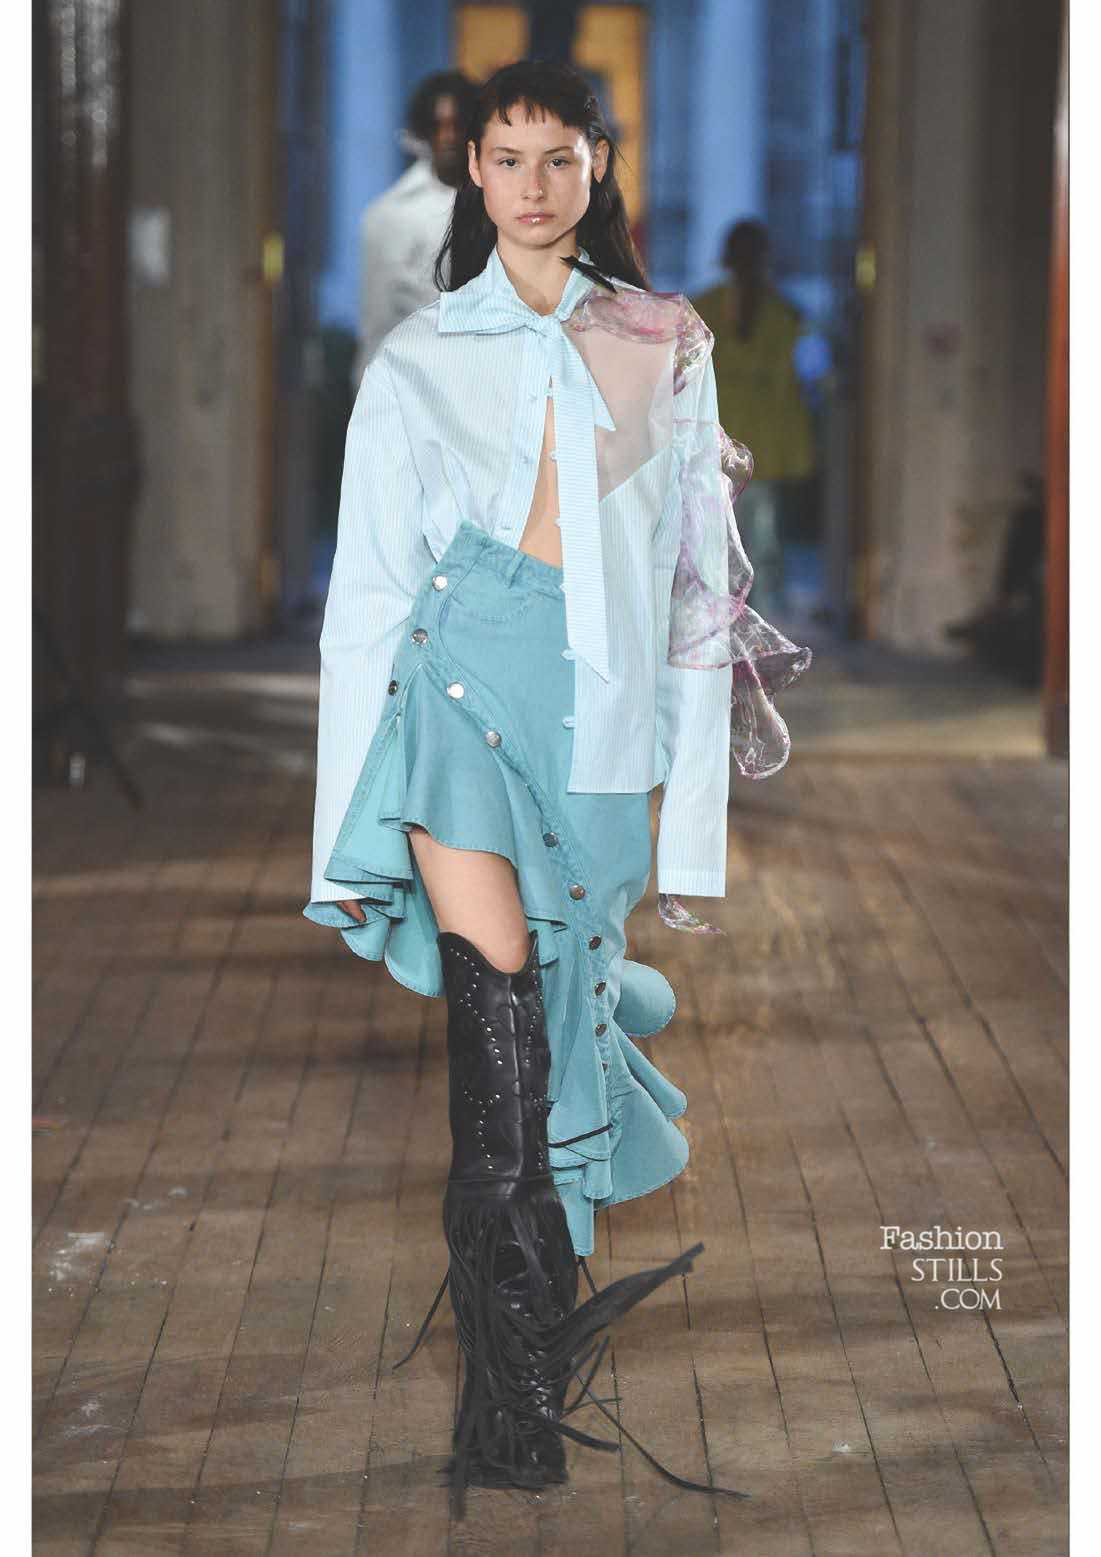 Neith Nyer_1513681565_c9_look-book-_-press-release-ss18-neith-nyer-017.jpg